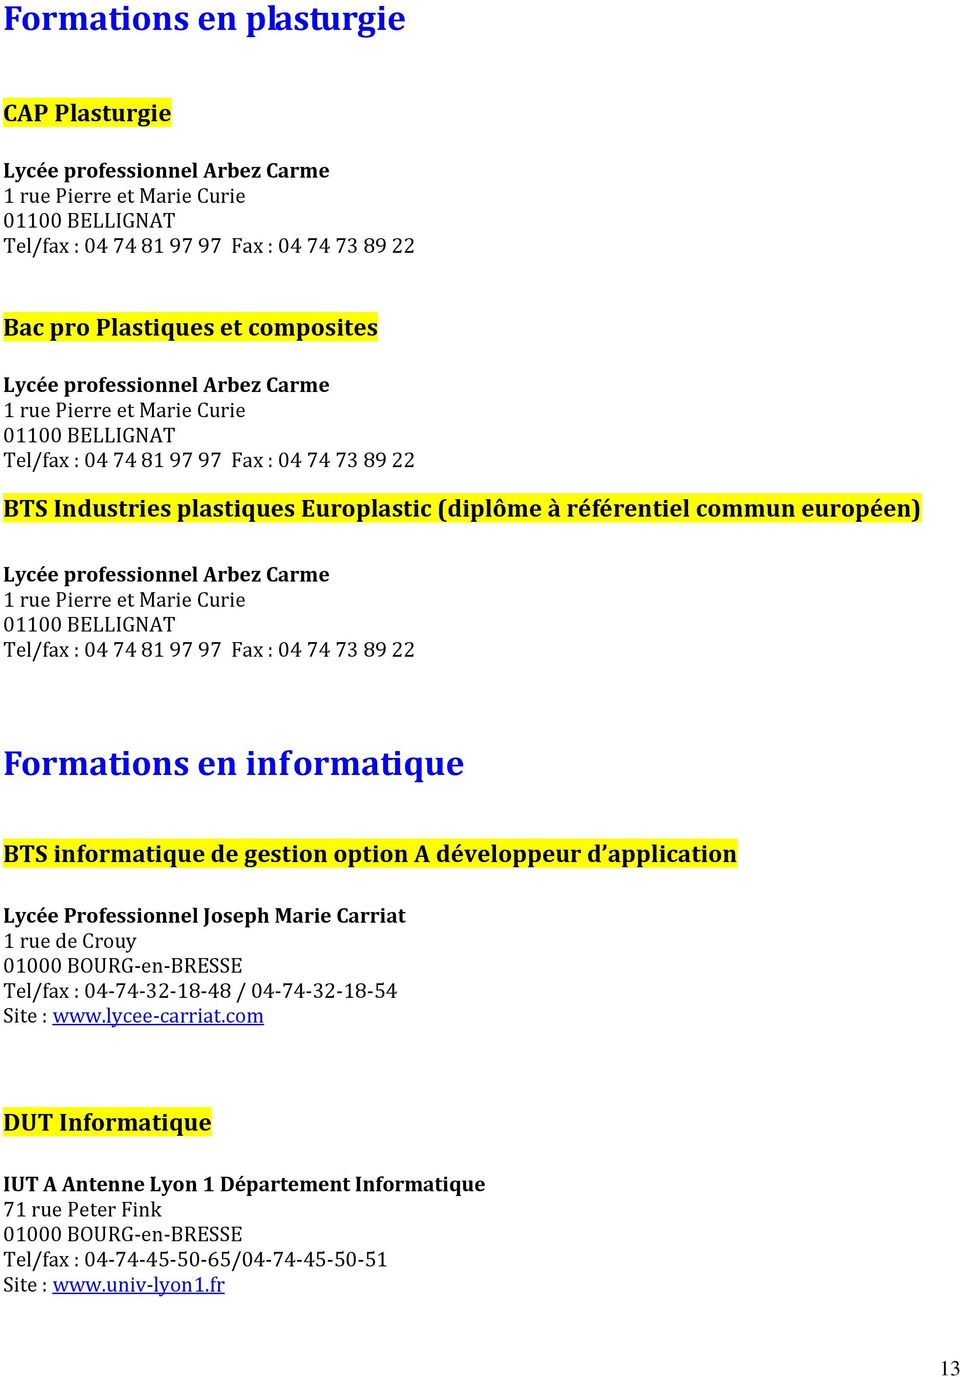 Fax : 04 74 73 89 22 Formations en informatique BTS informatique de gestion option A développeur d application Lycée Professionnel Joseph Marie Carriat Tel/fax : 04-74-32-18-48 /